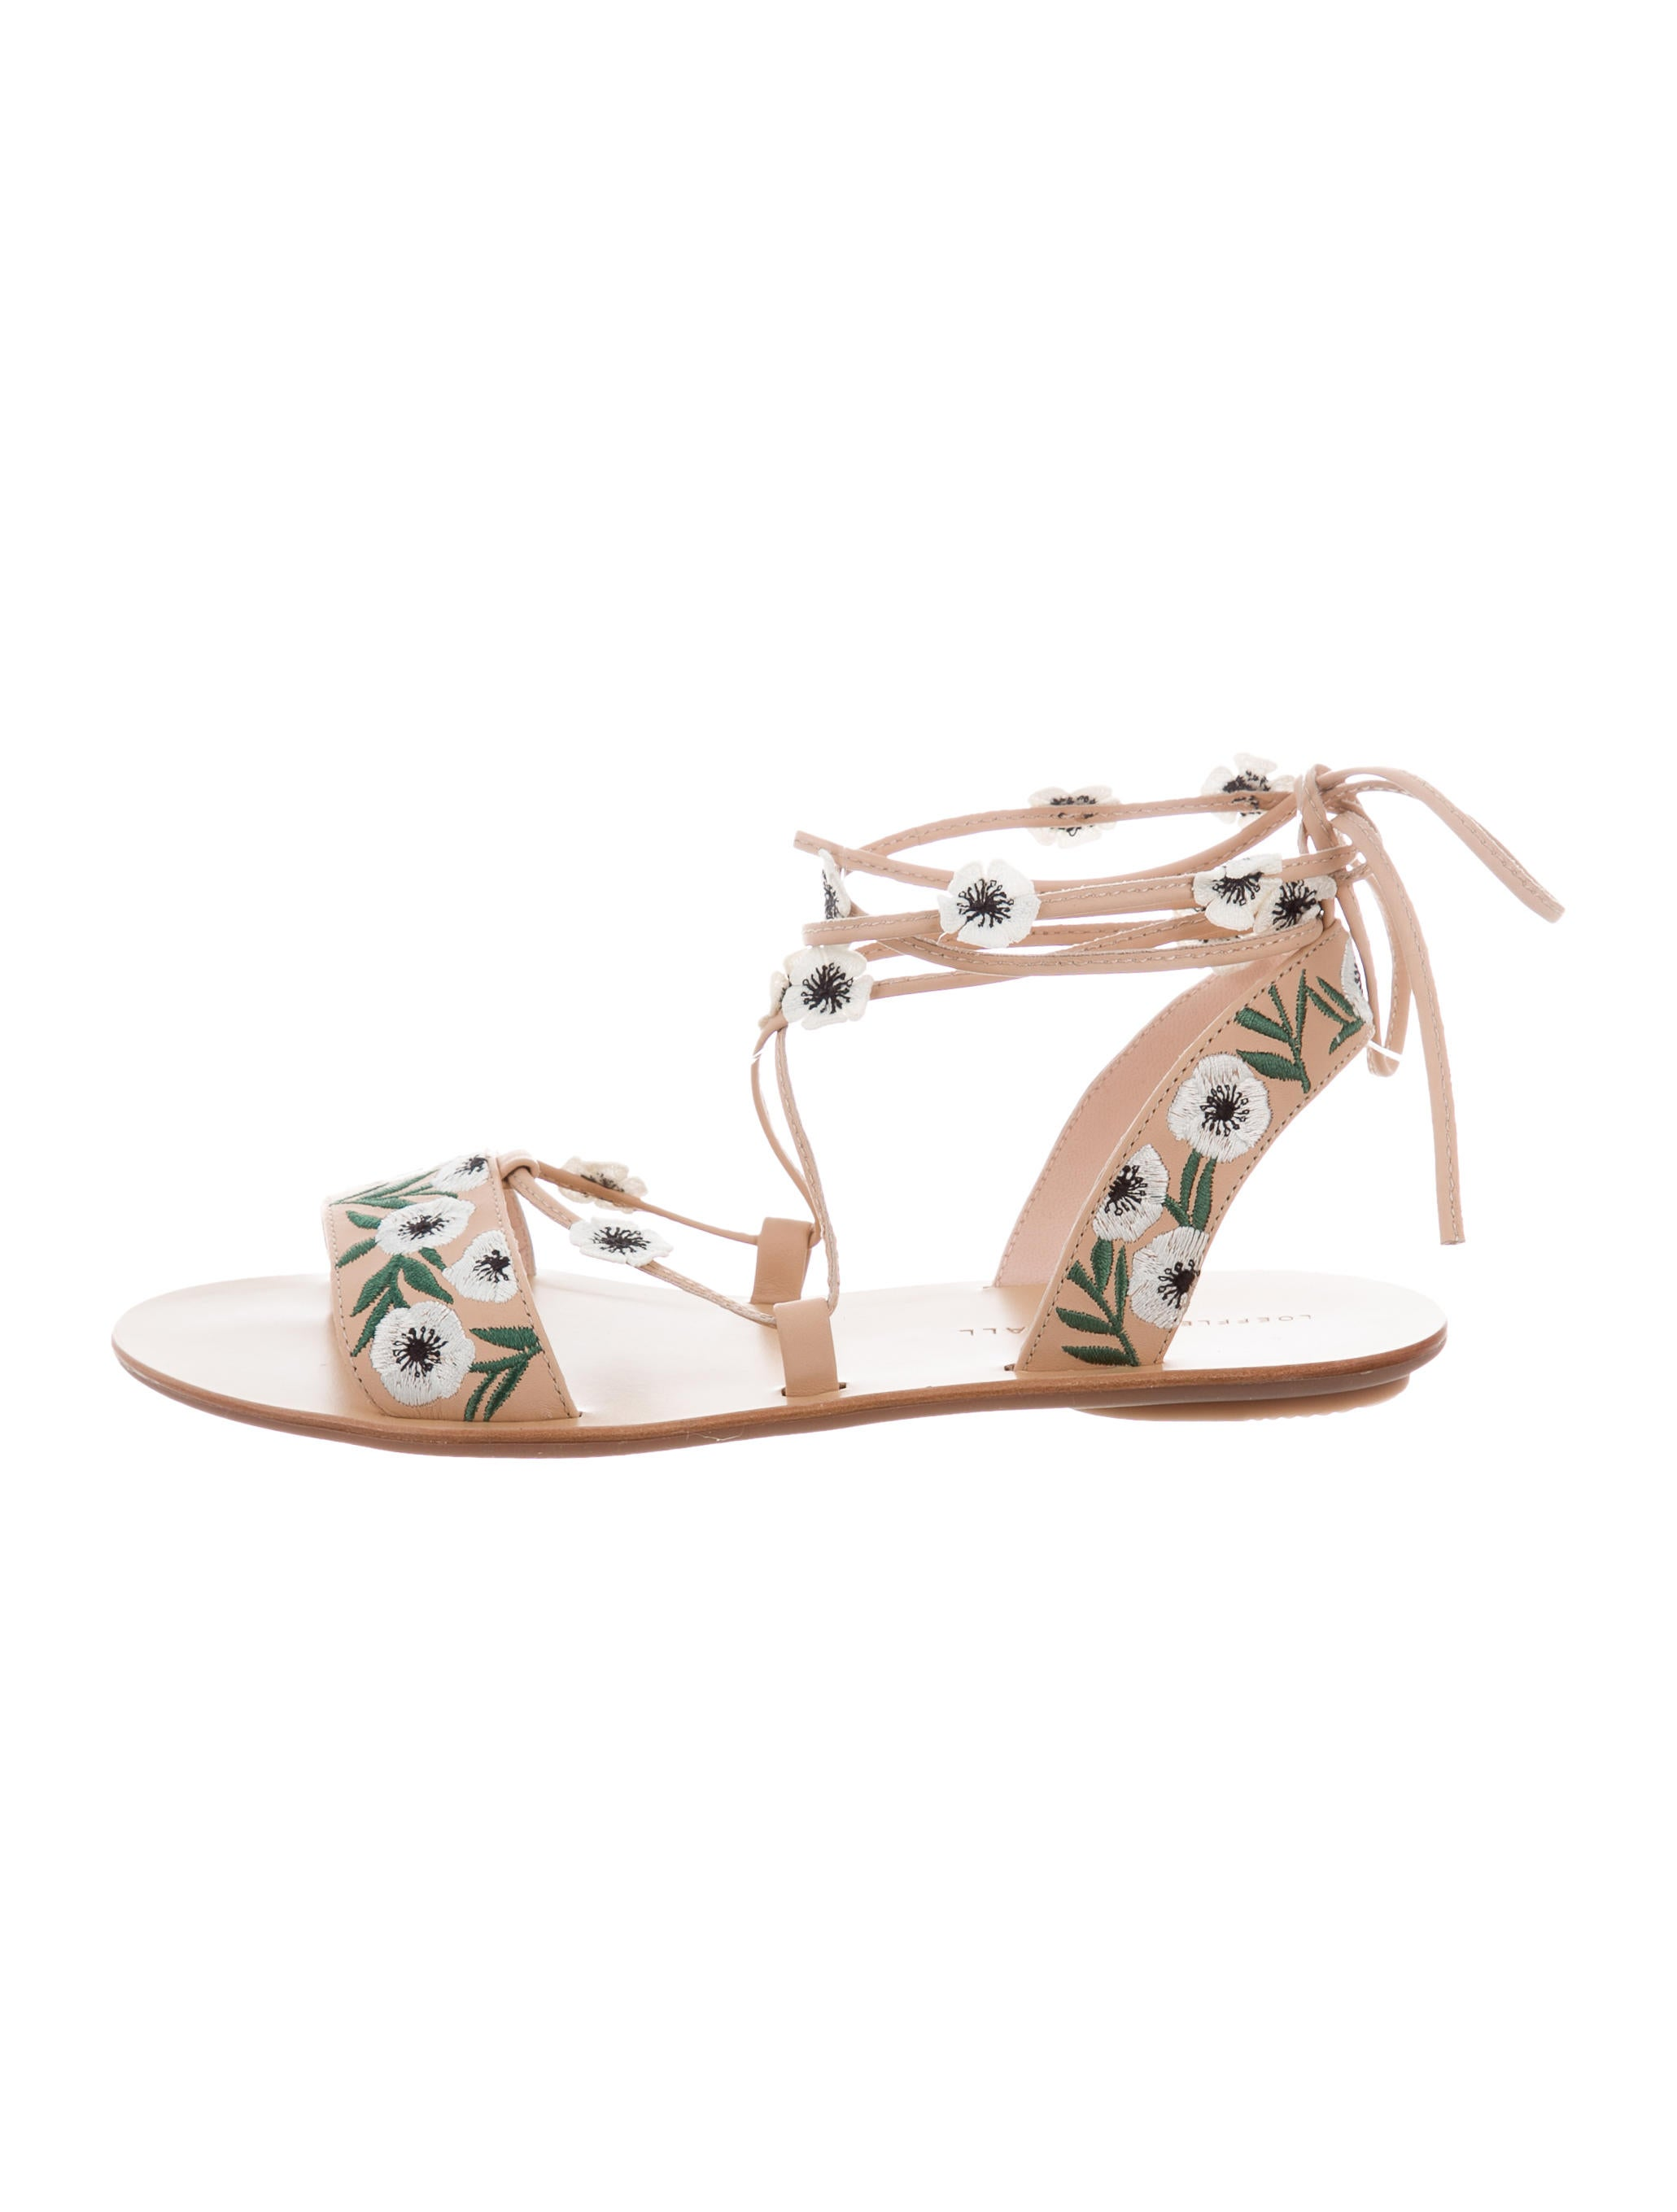 Loeffler Randall Fleura Lace-Up Sandals w/ Tags reliable for sale zl31Qk